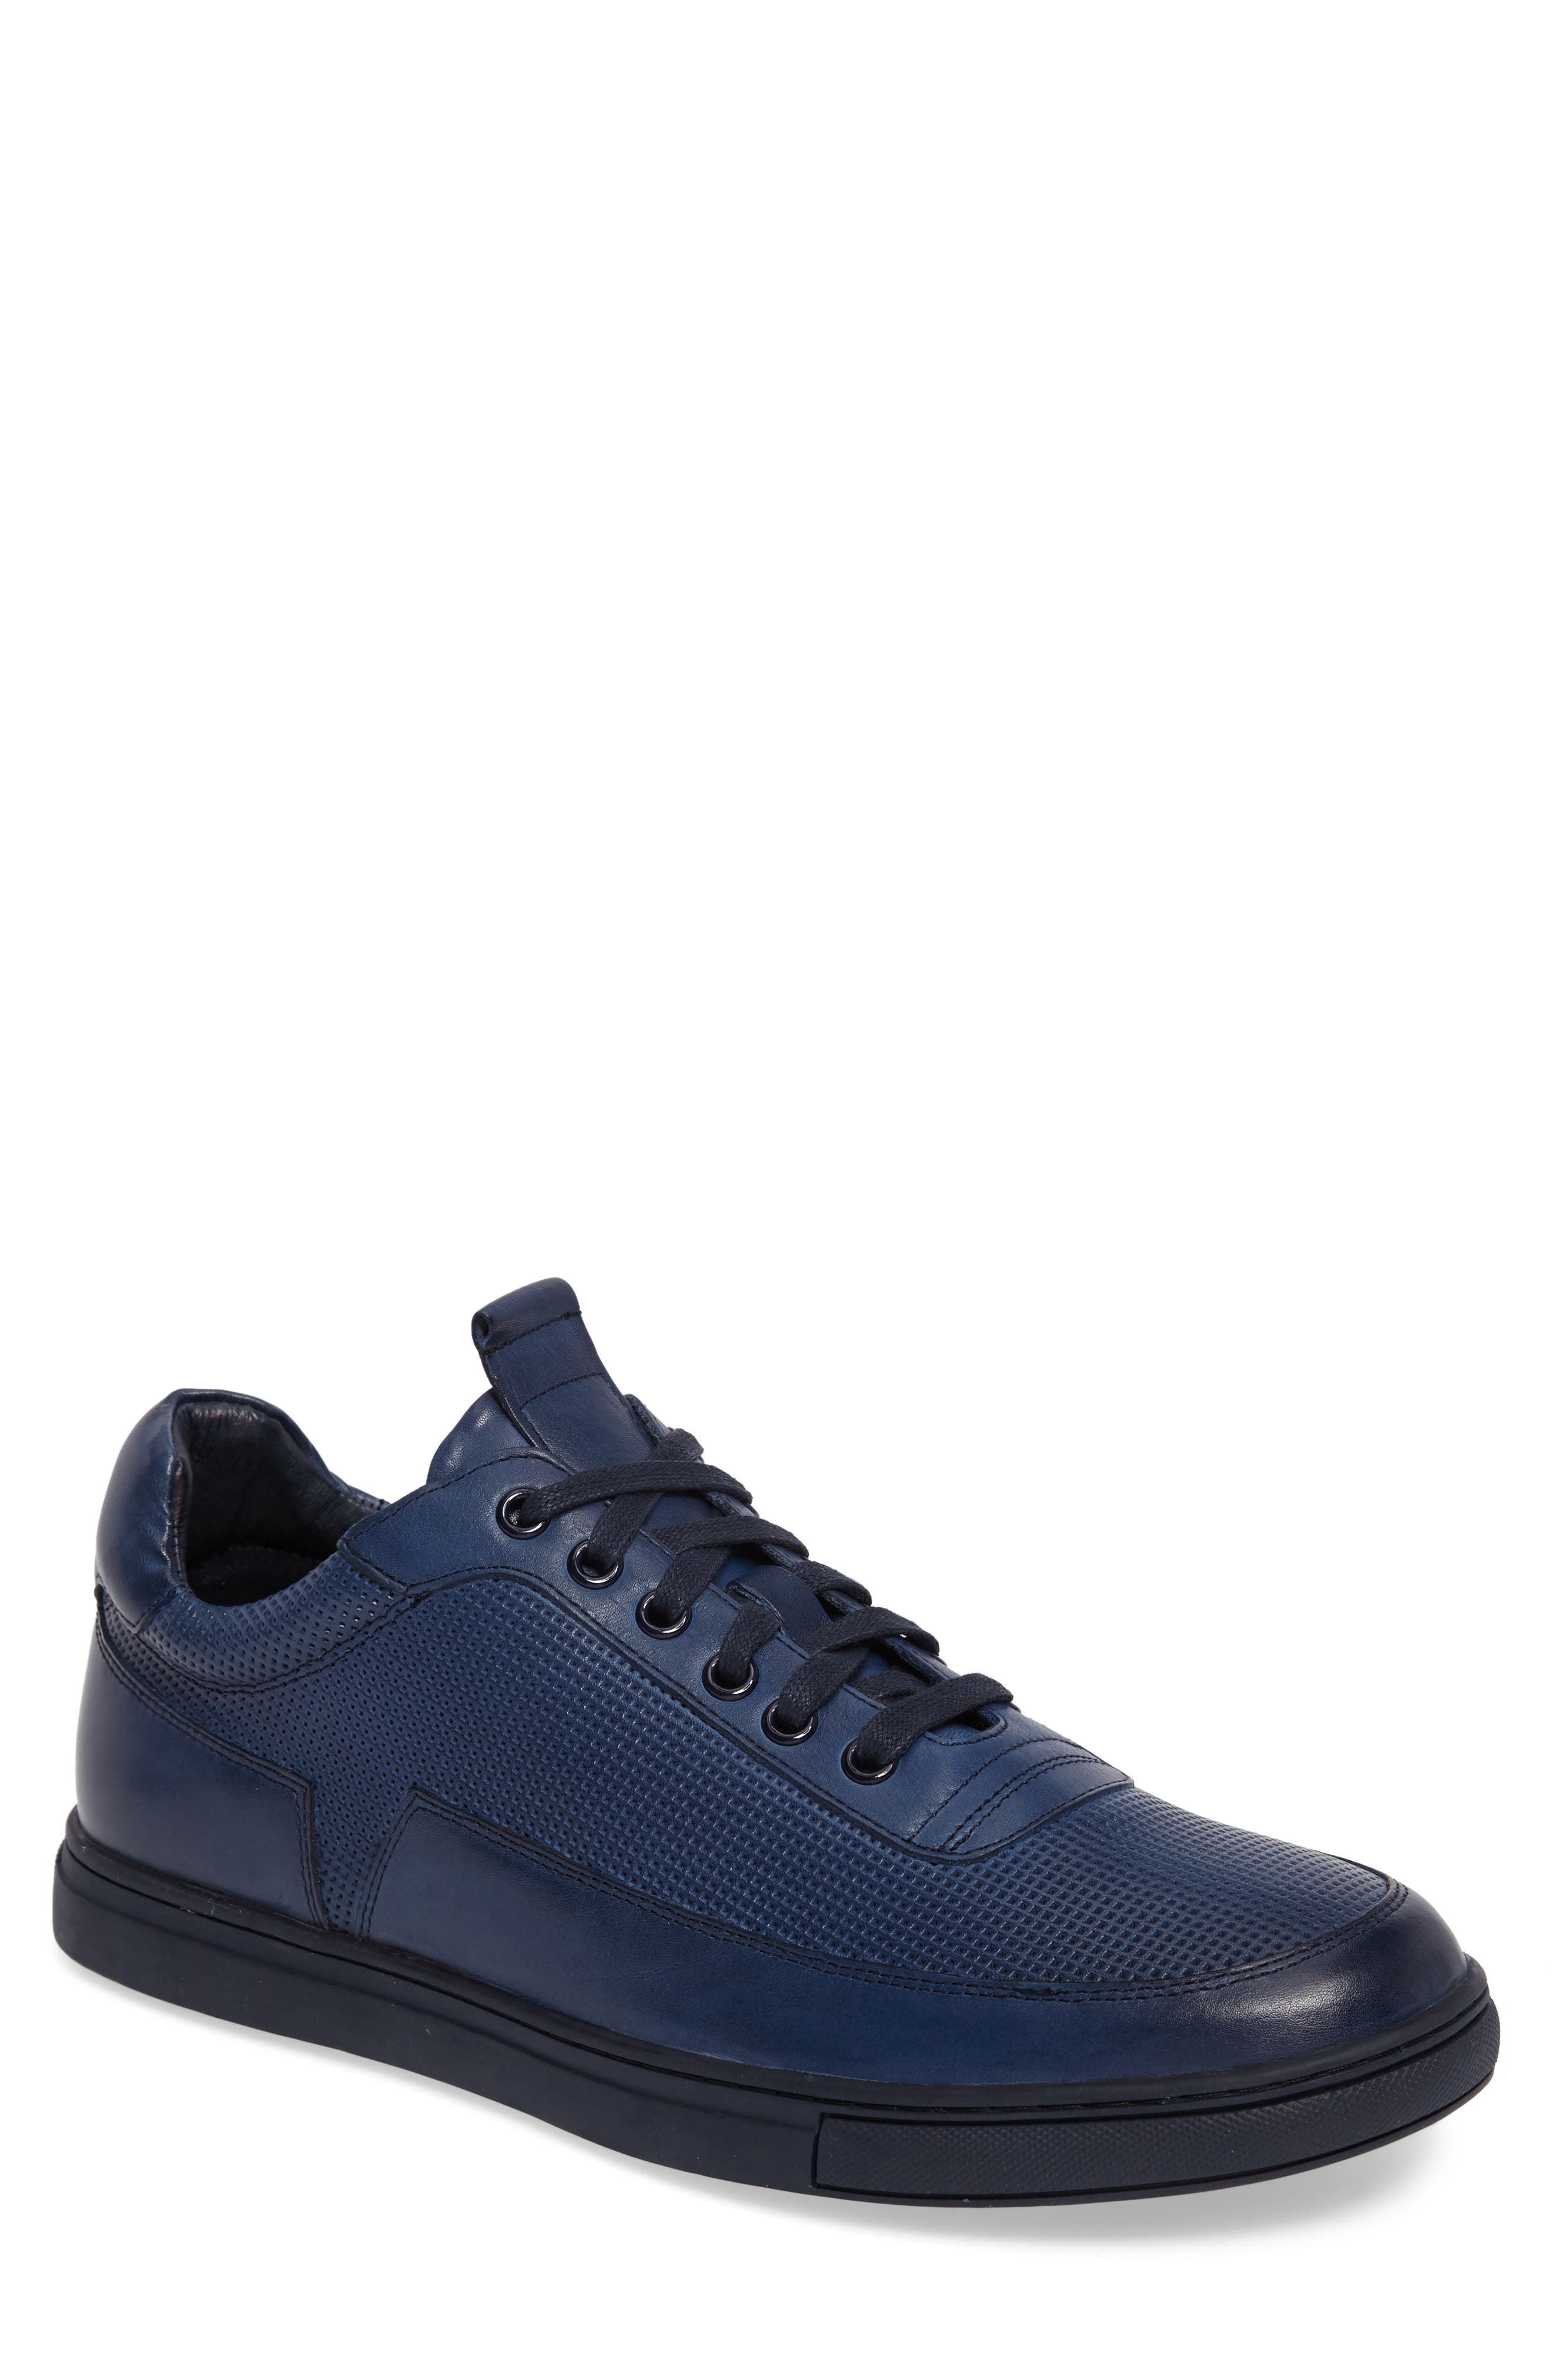 Harmony Sneaker,                             Main thumbnail 1, color,                             BLUE LEATHER